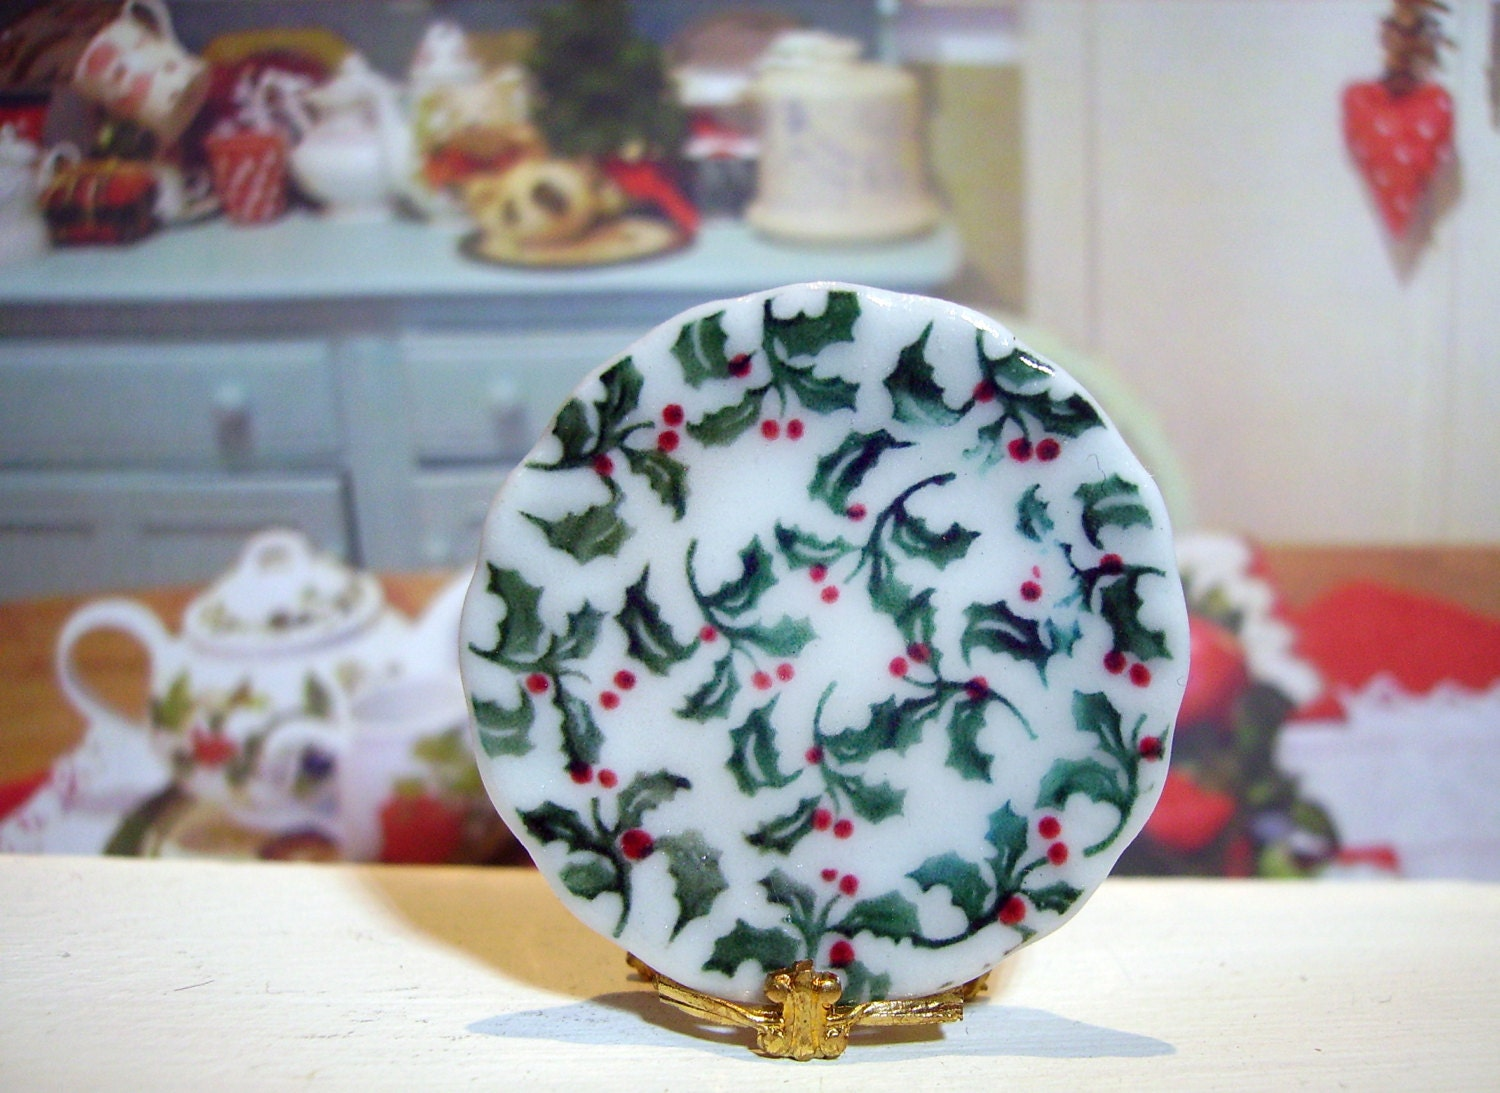 Holly Christmas  Miniature Plate for Dollhouse 1:12 scale - LeClosDesLavandes